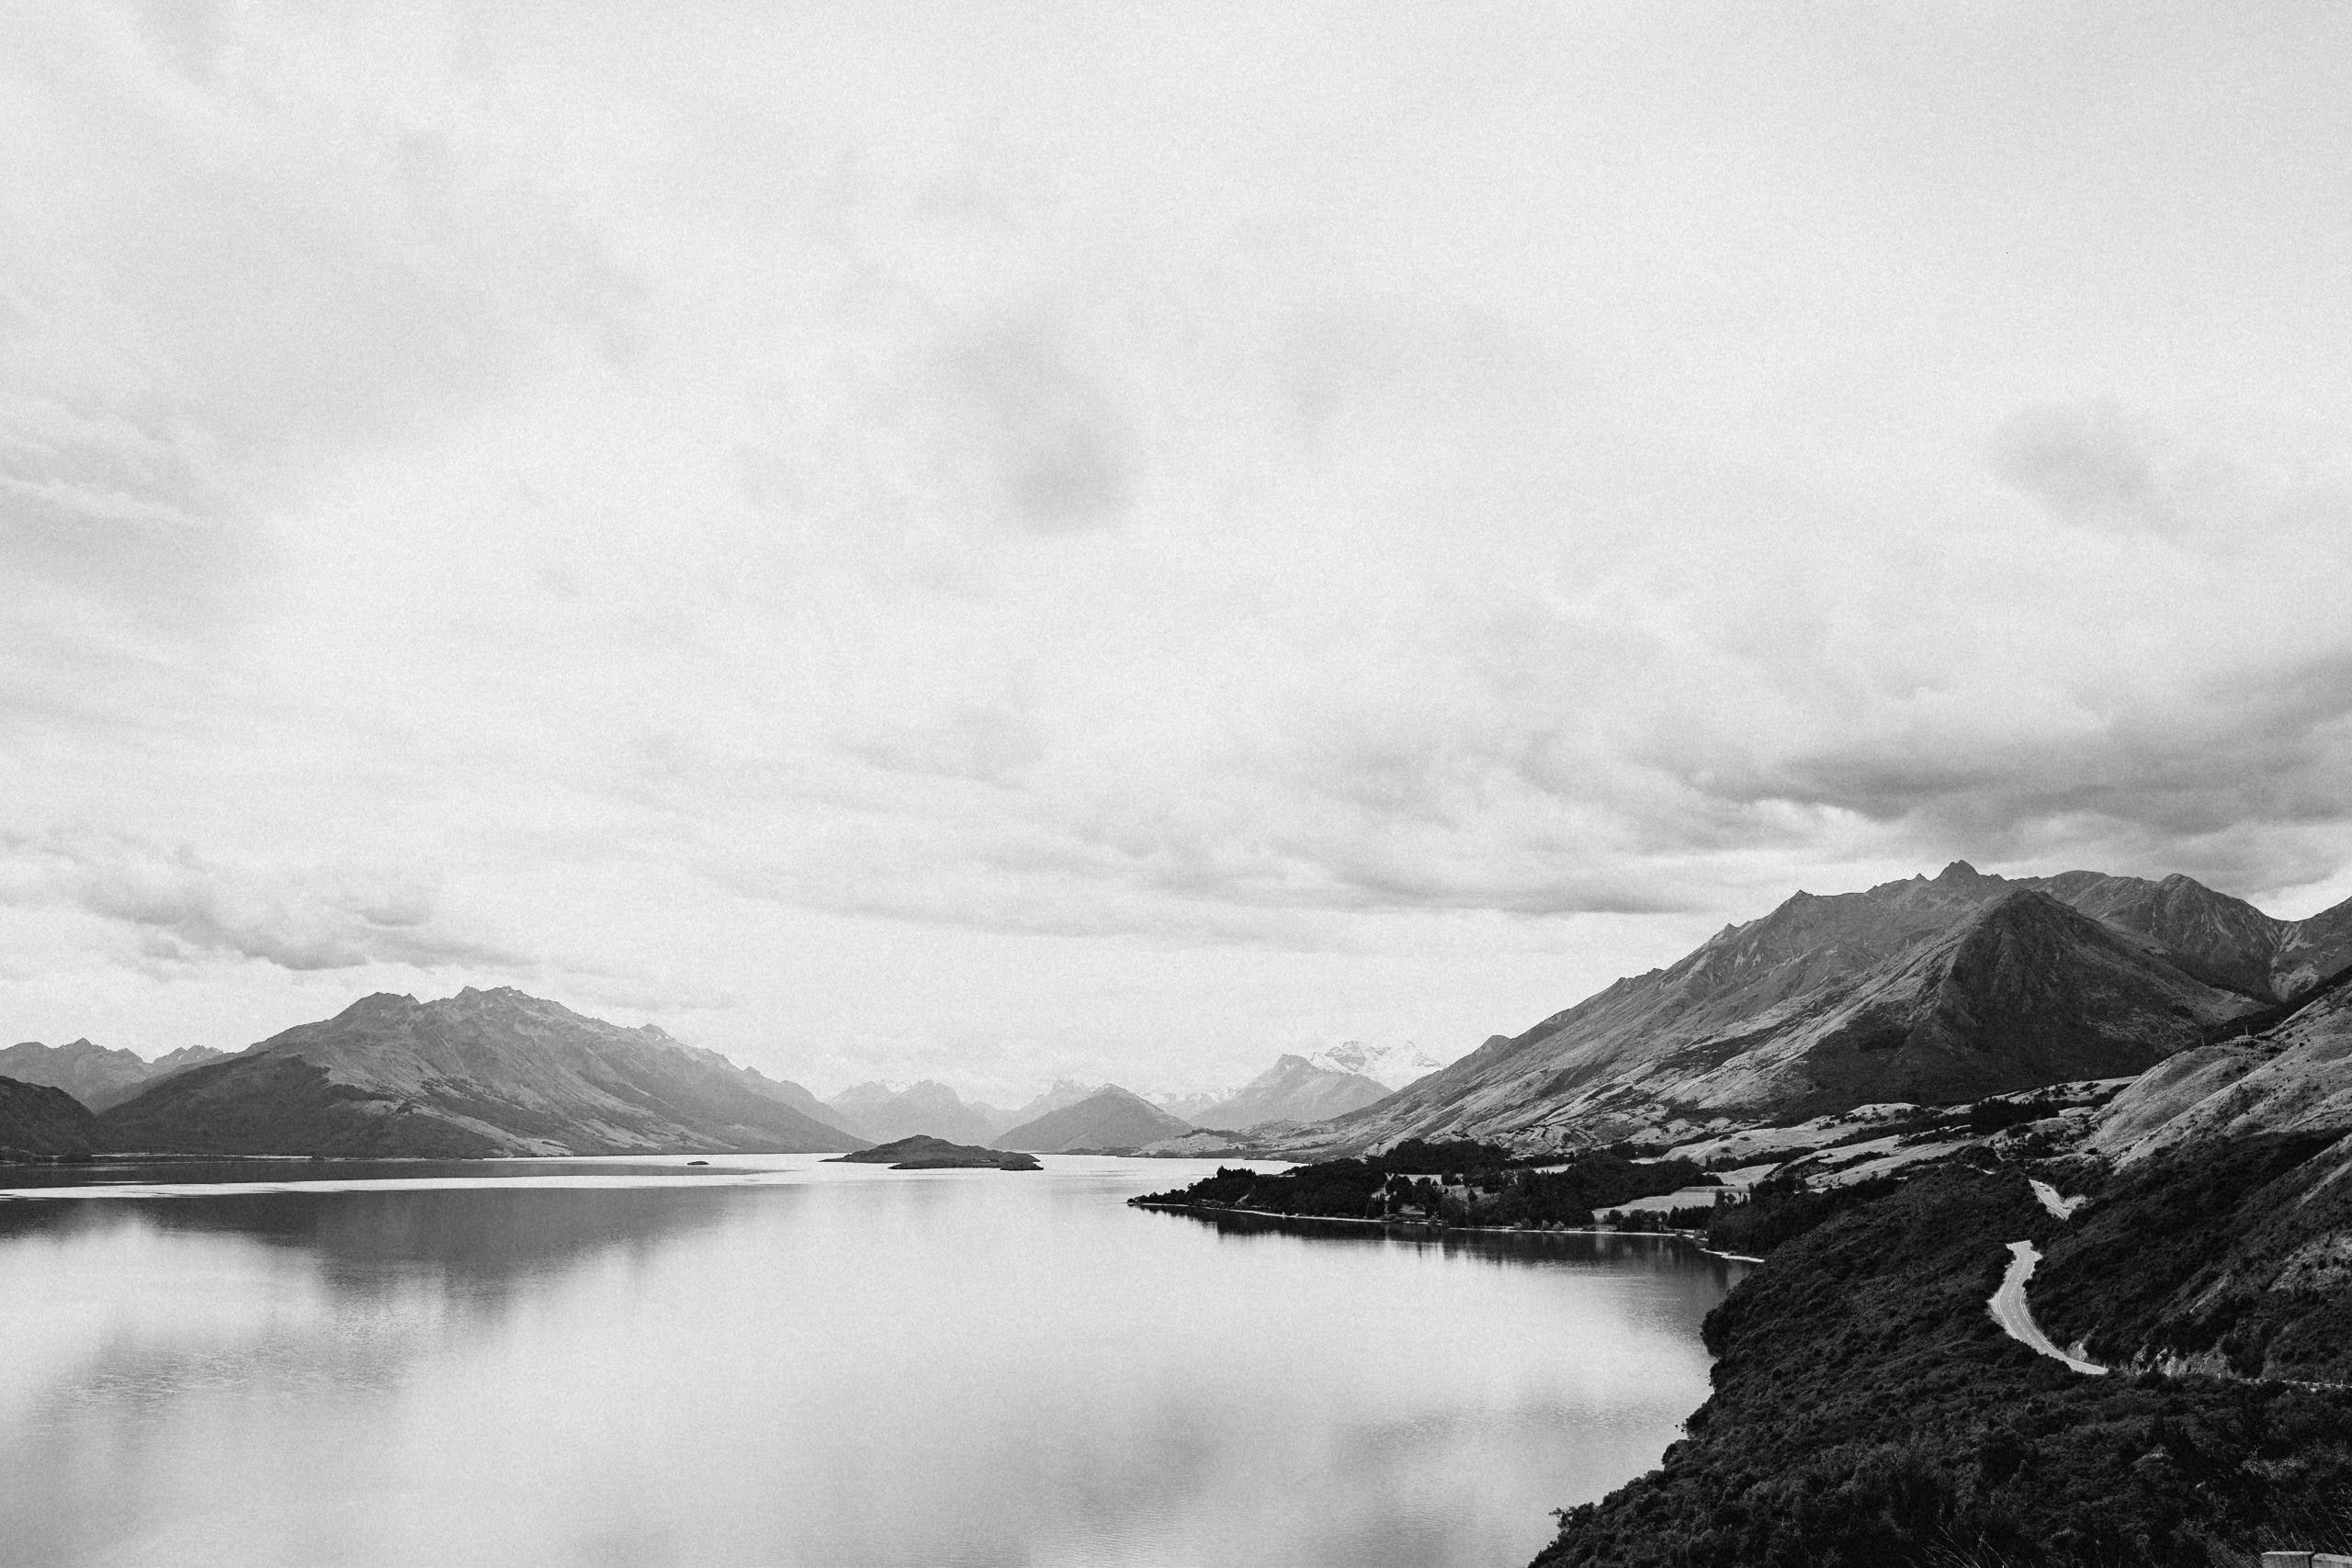 grayscale landscape photography of a lake near mountains